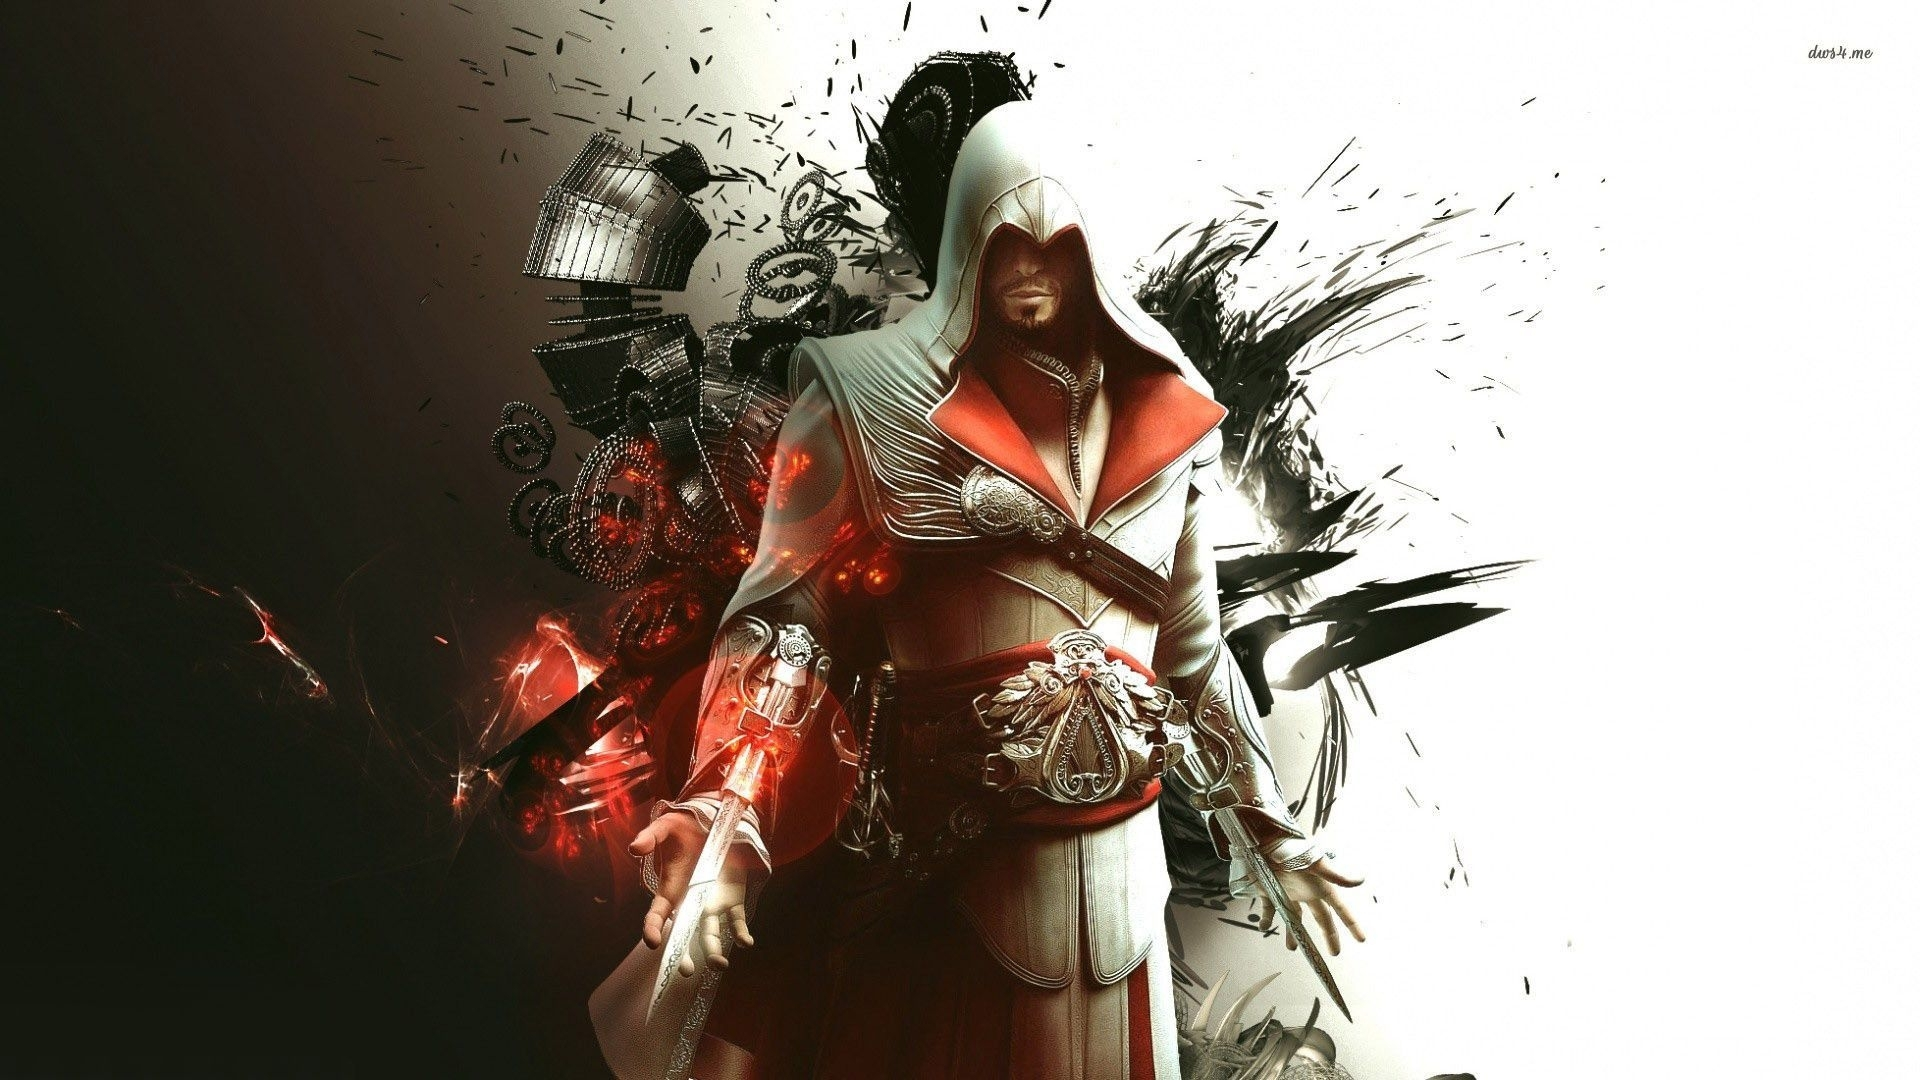 assassin's creed ezio - google search | desmond's assassin ancestors